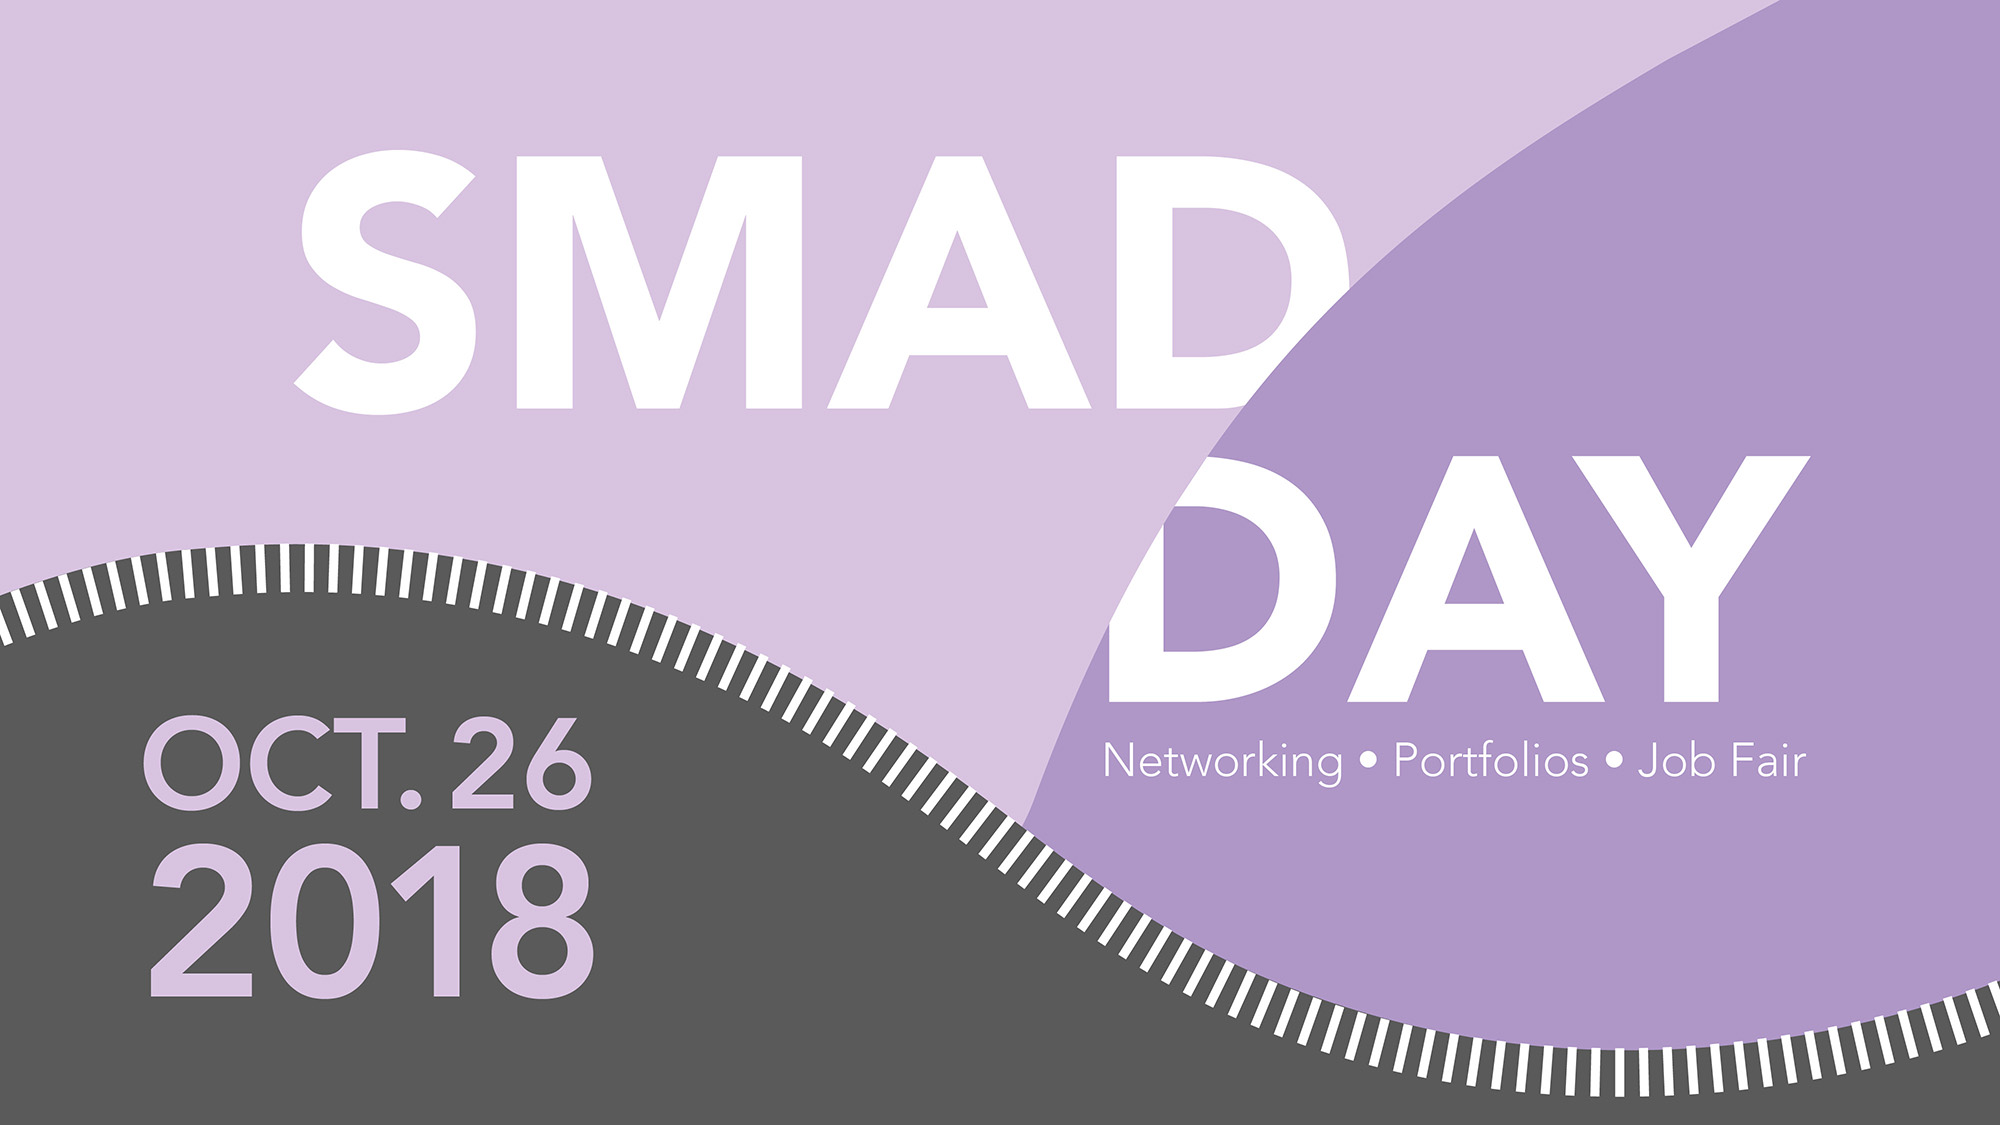 SMAD day 2018